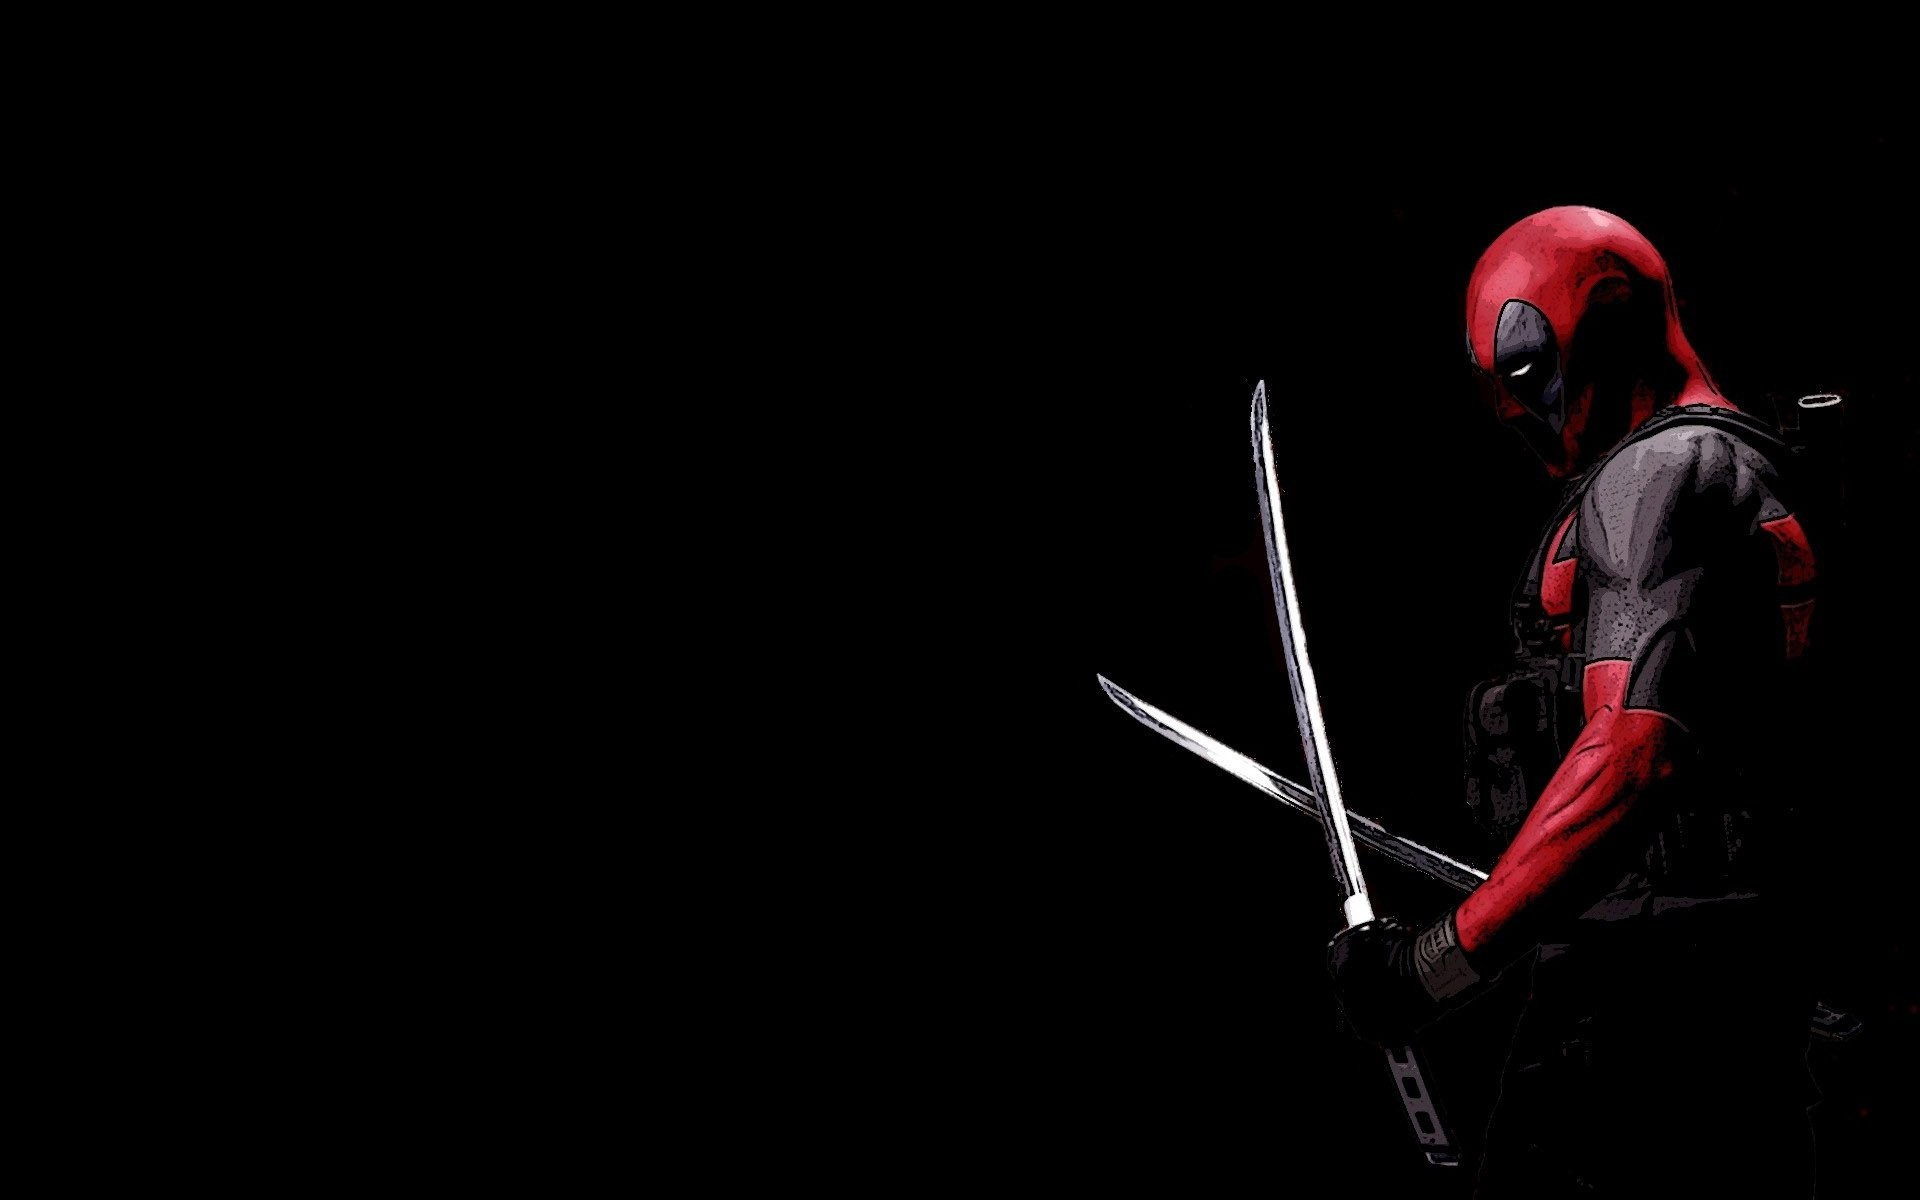 4k Deadpool Wallpaper Backgrounds Photos Images Pictures Yl Computing